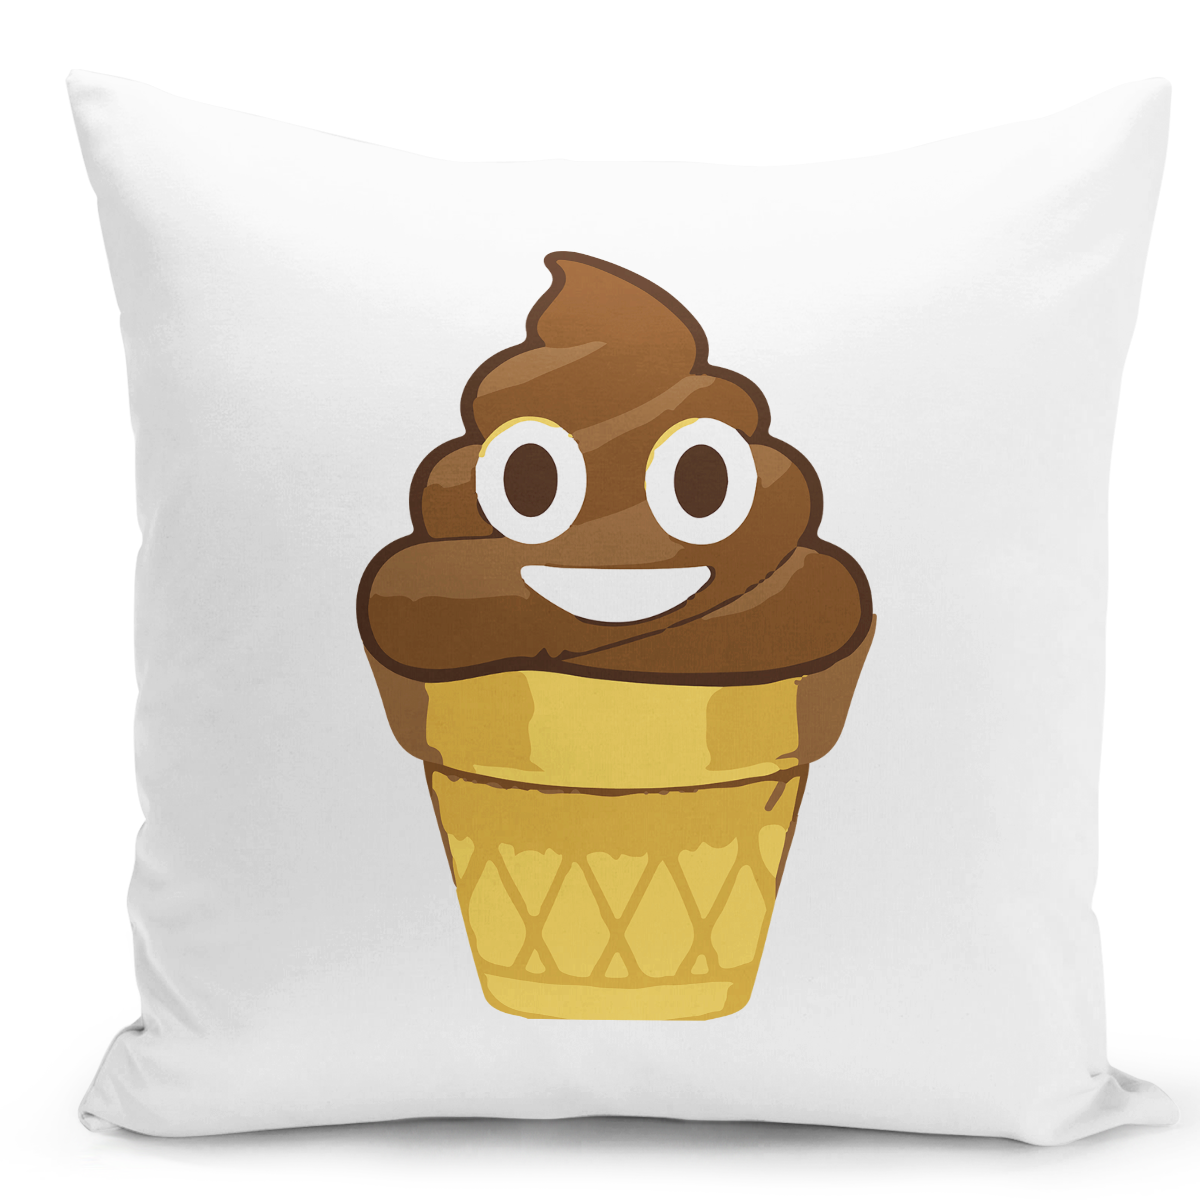 16x16-inch-Throw-Pillow-for-Home-Decor-with-Stuffing-Smily-Poop-Emoji-Ice-Cream-Cone-Funny-Pillow-